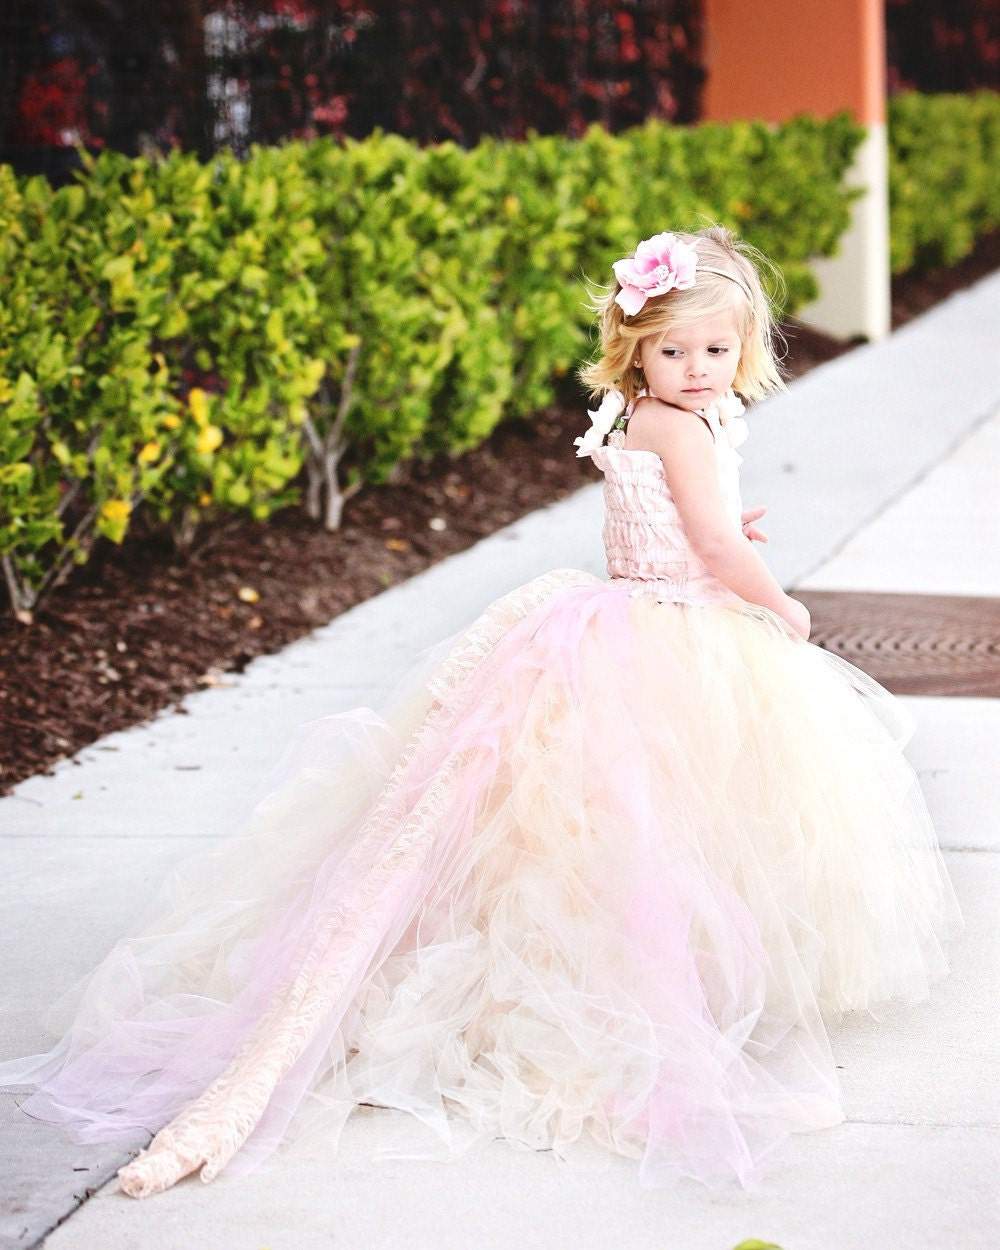 Flower Girl Dresses For Garden Weddings: Reserver For Jennifer GuleyLace Flower Girl Dress W